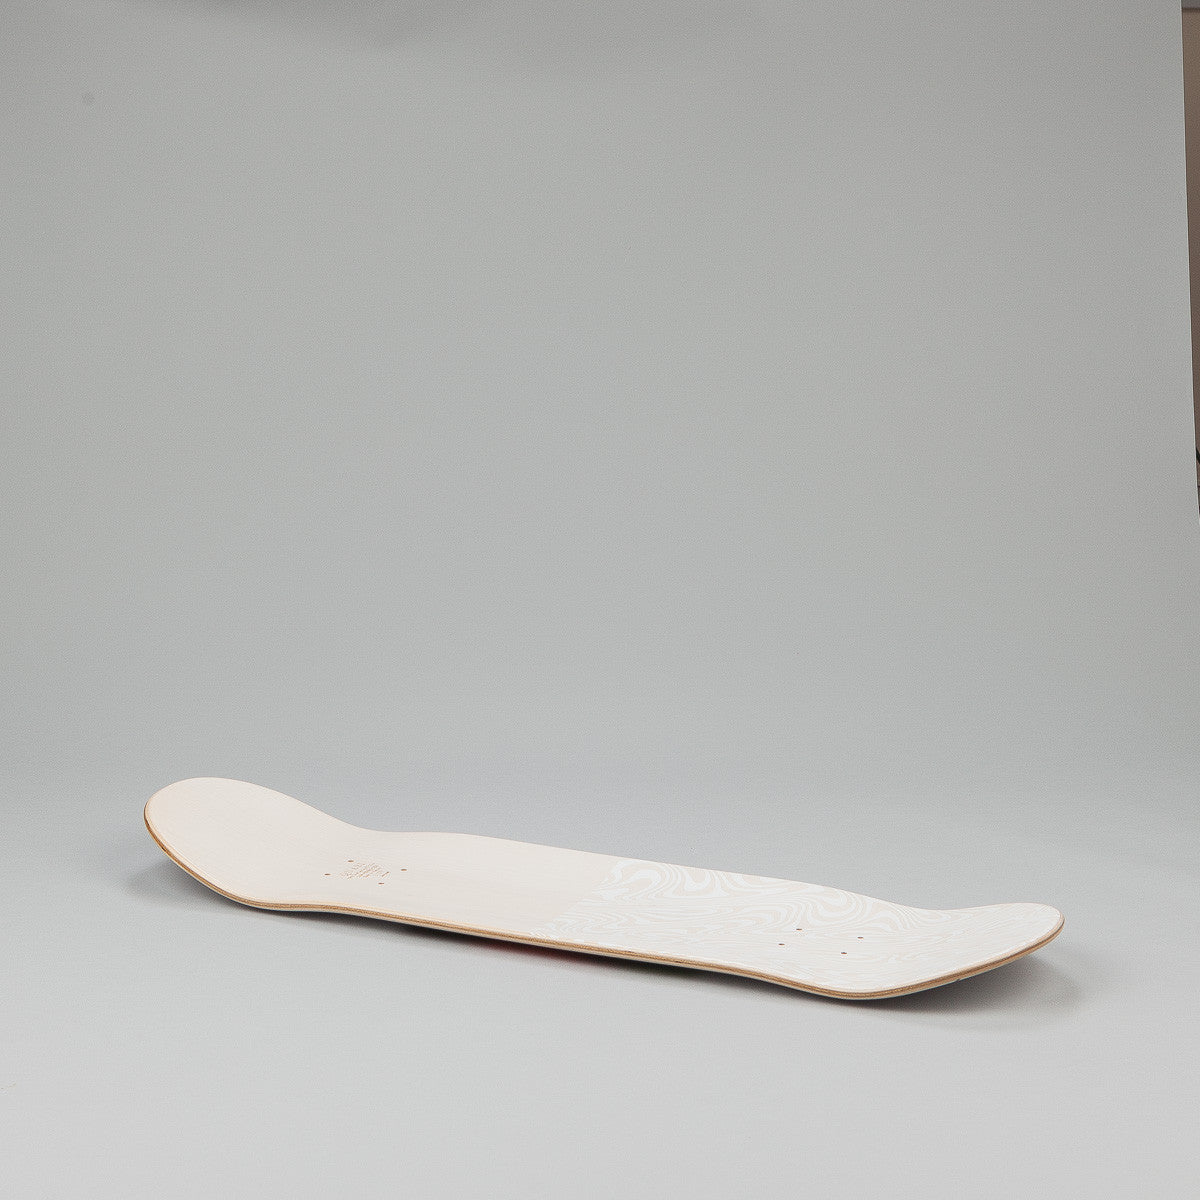 Quasi Skateboards Dior Deck - Whitewash 8.375""